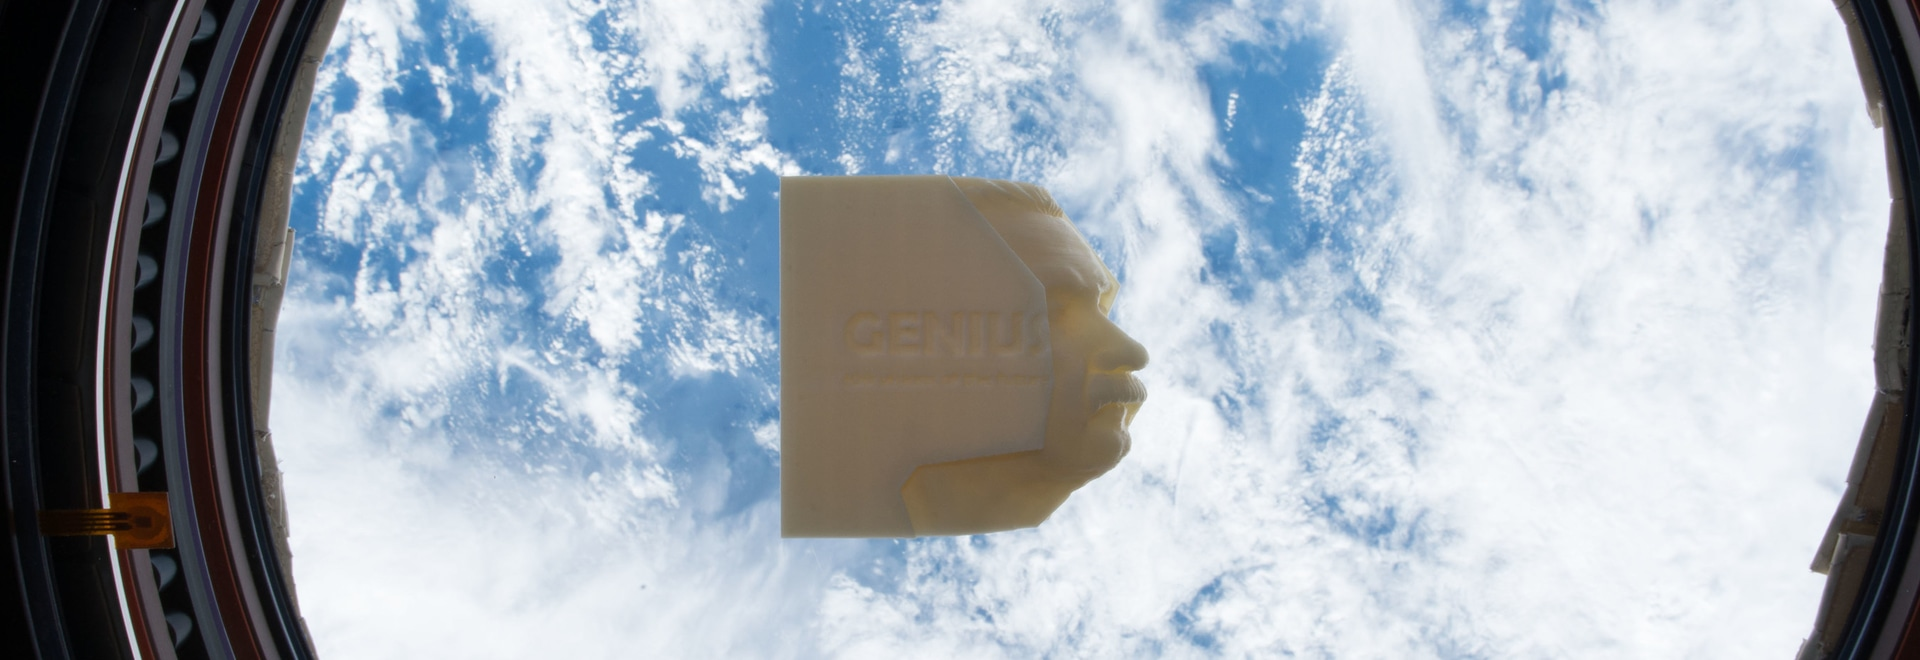 Genius: 100 Visions of the Future, world's first 3D book printed on space station